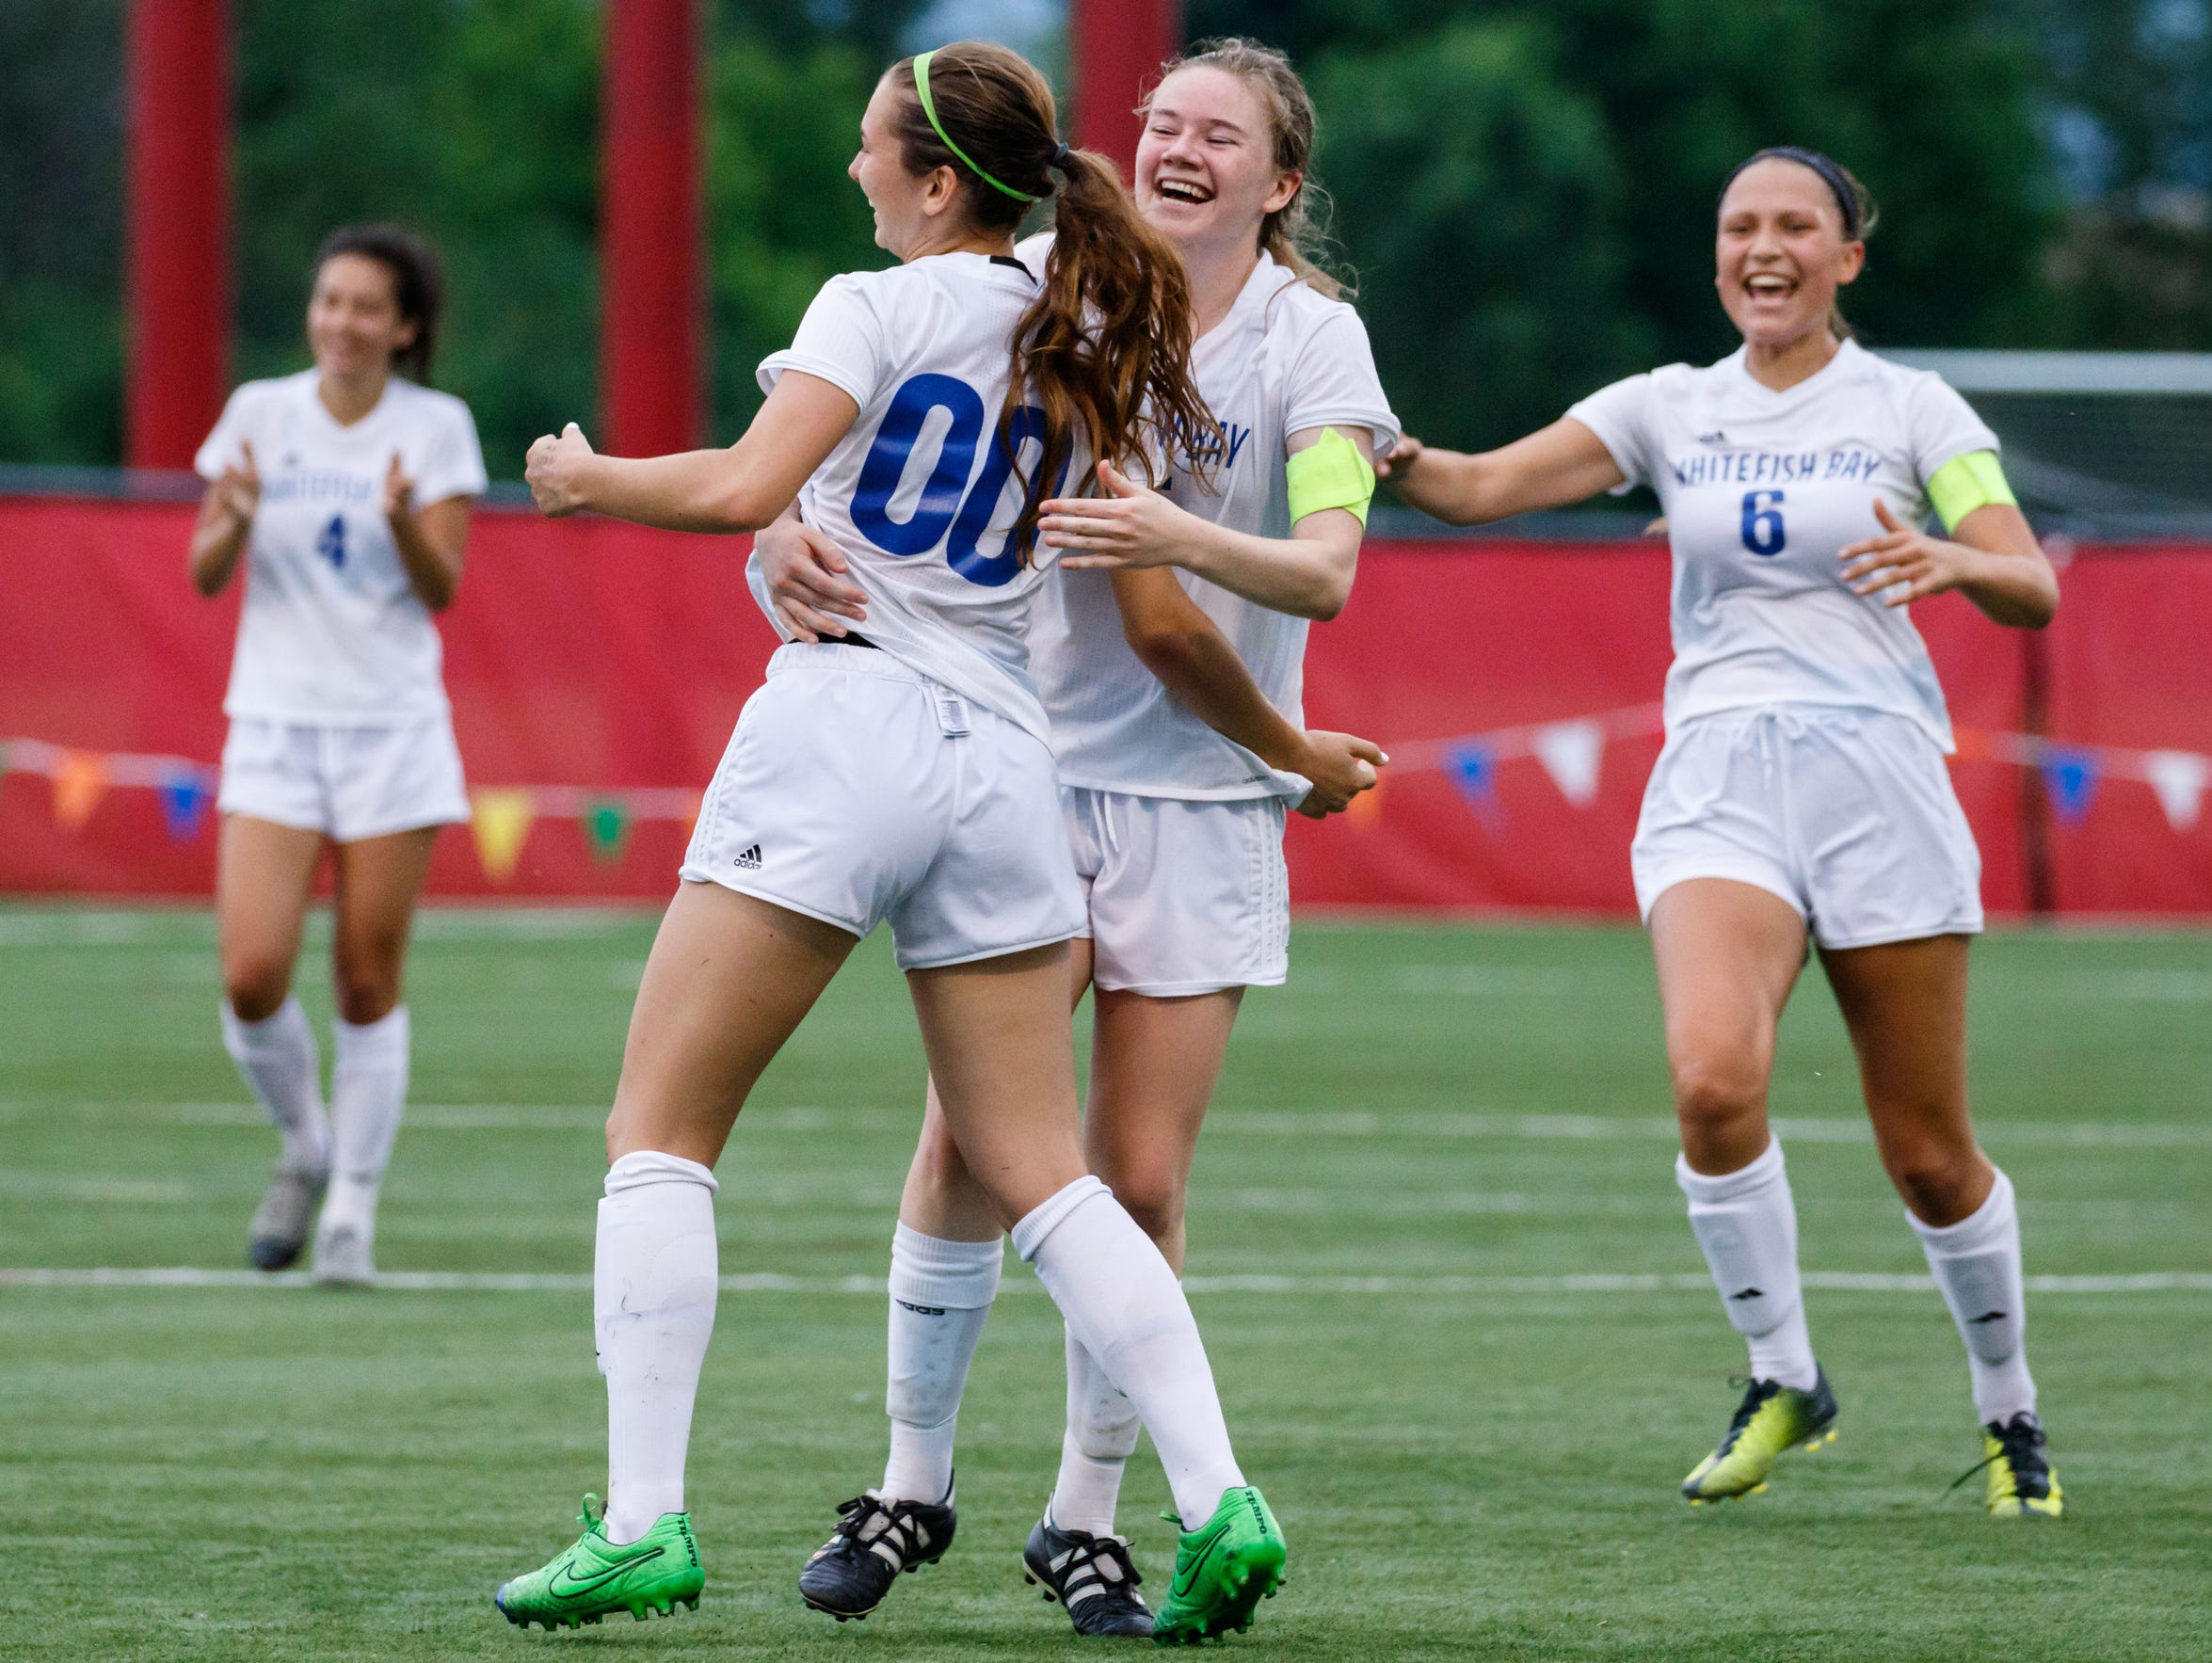 Whitefish Bay players rush to congratulate Taylor Kerwin